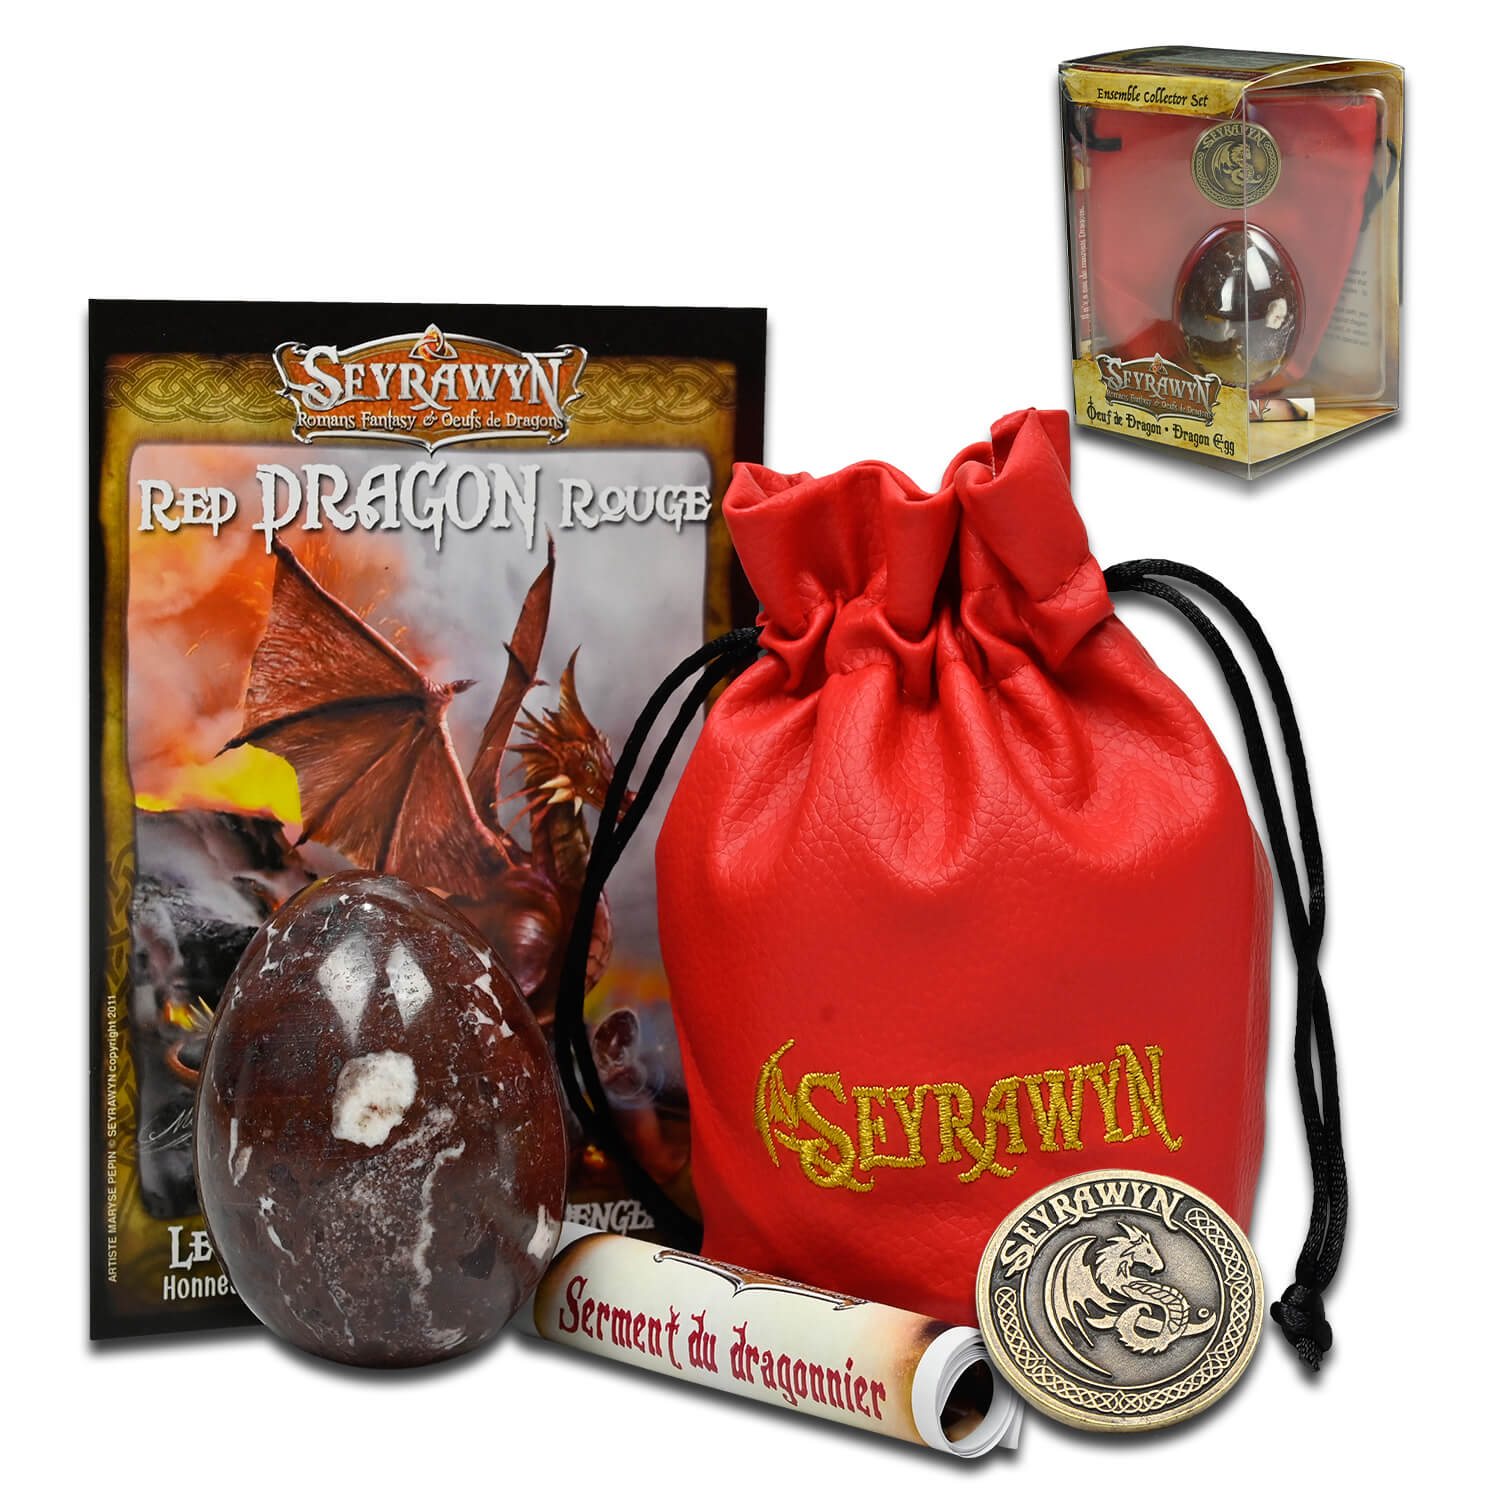 Seyrawyn Dragon Egg - Collector Set